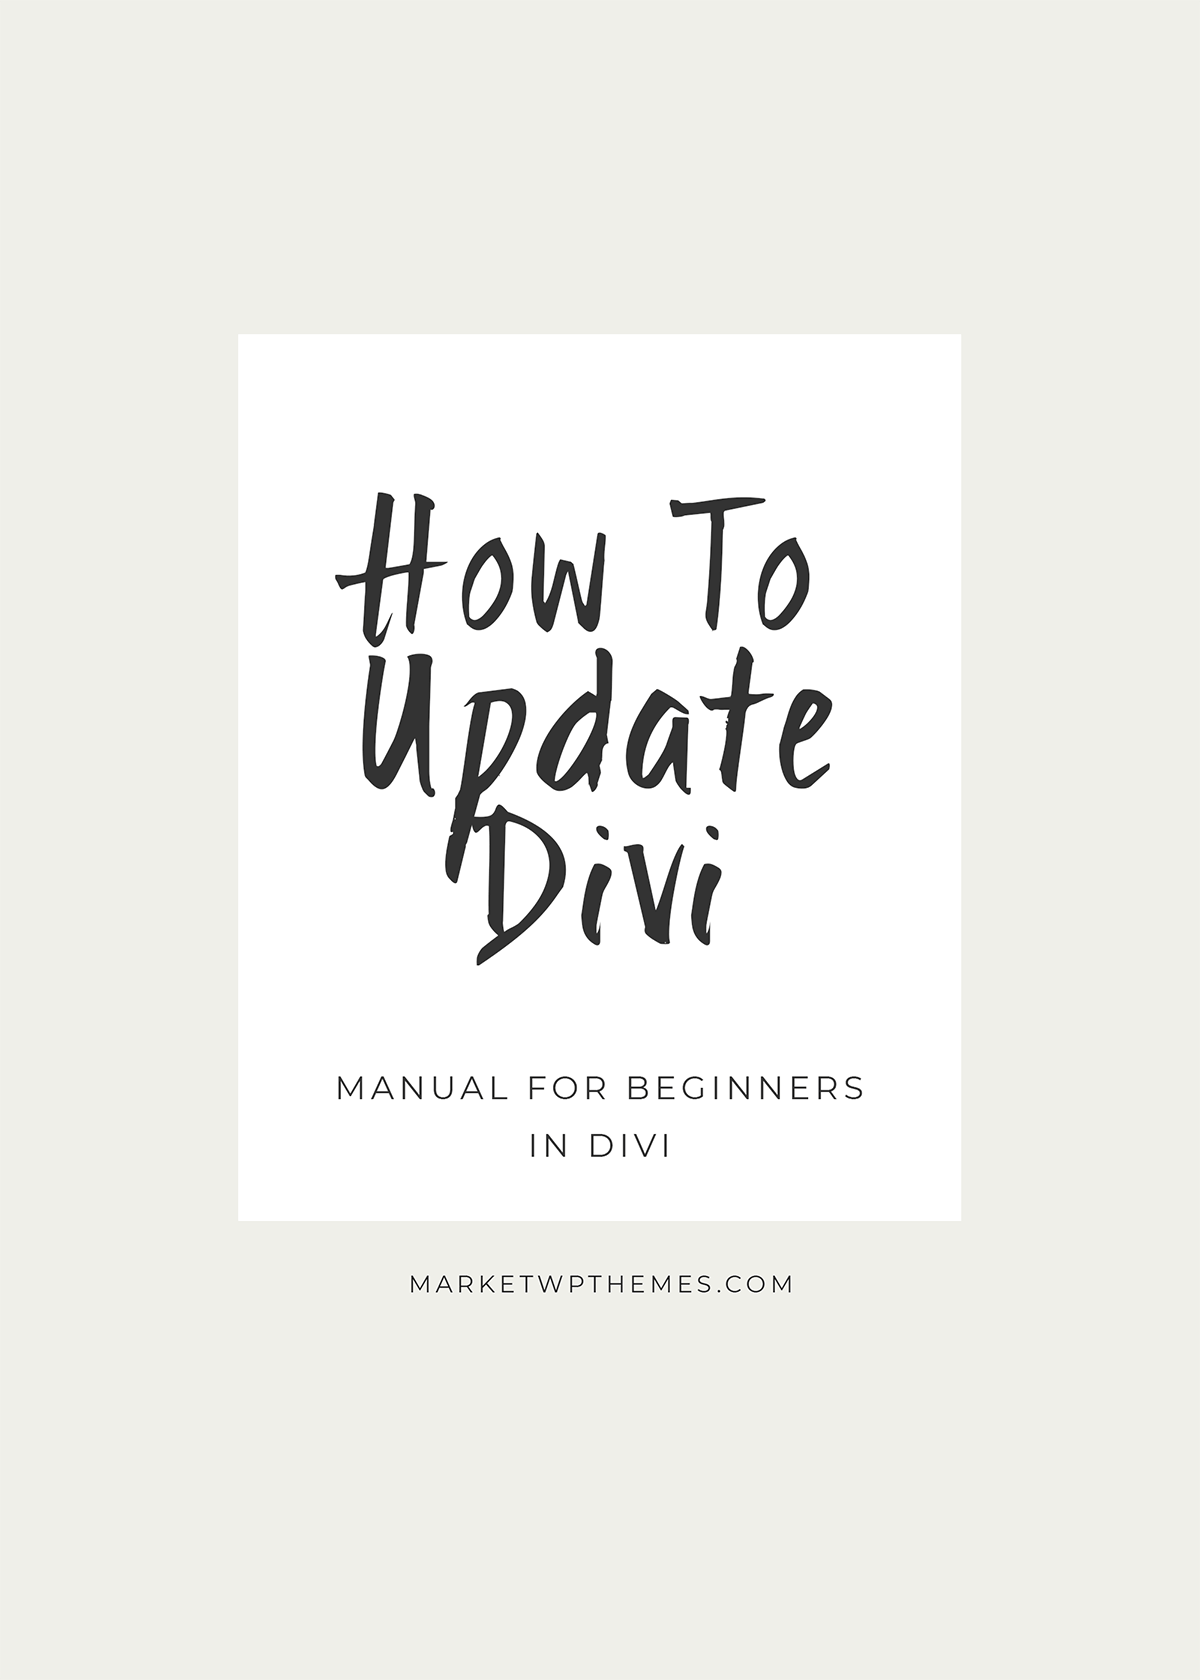 How to update Divi